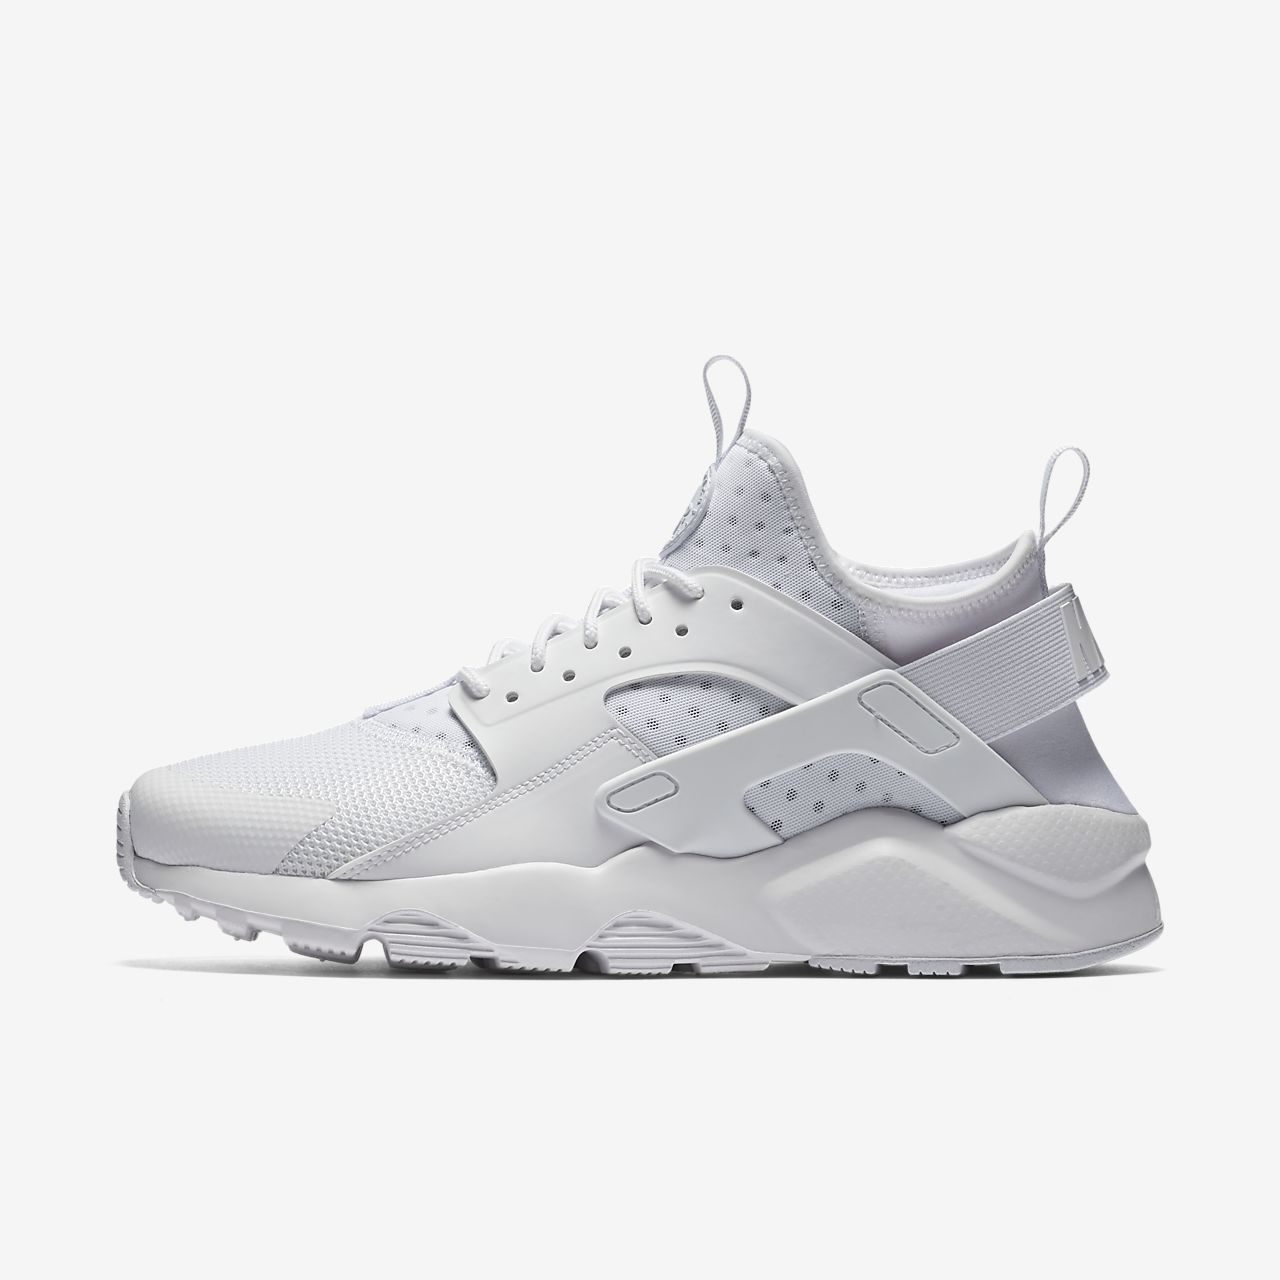 buy popular 6c802 23fb3 Men s Shoe. Nike Air Huarache Ultra